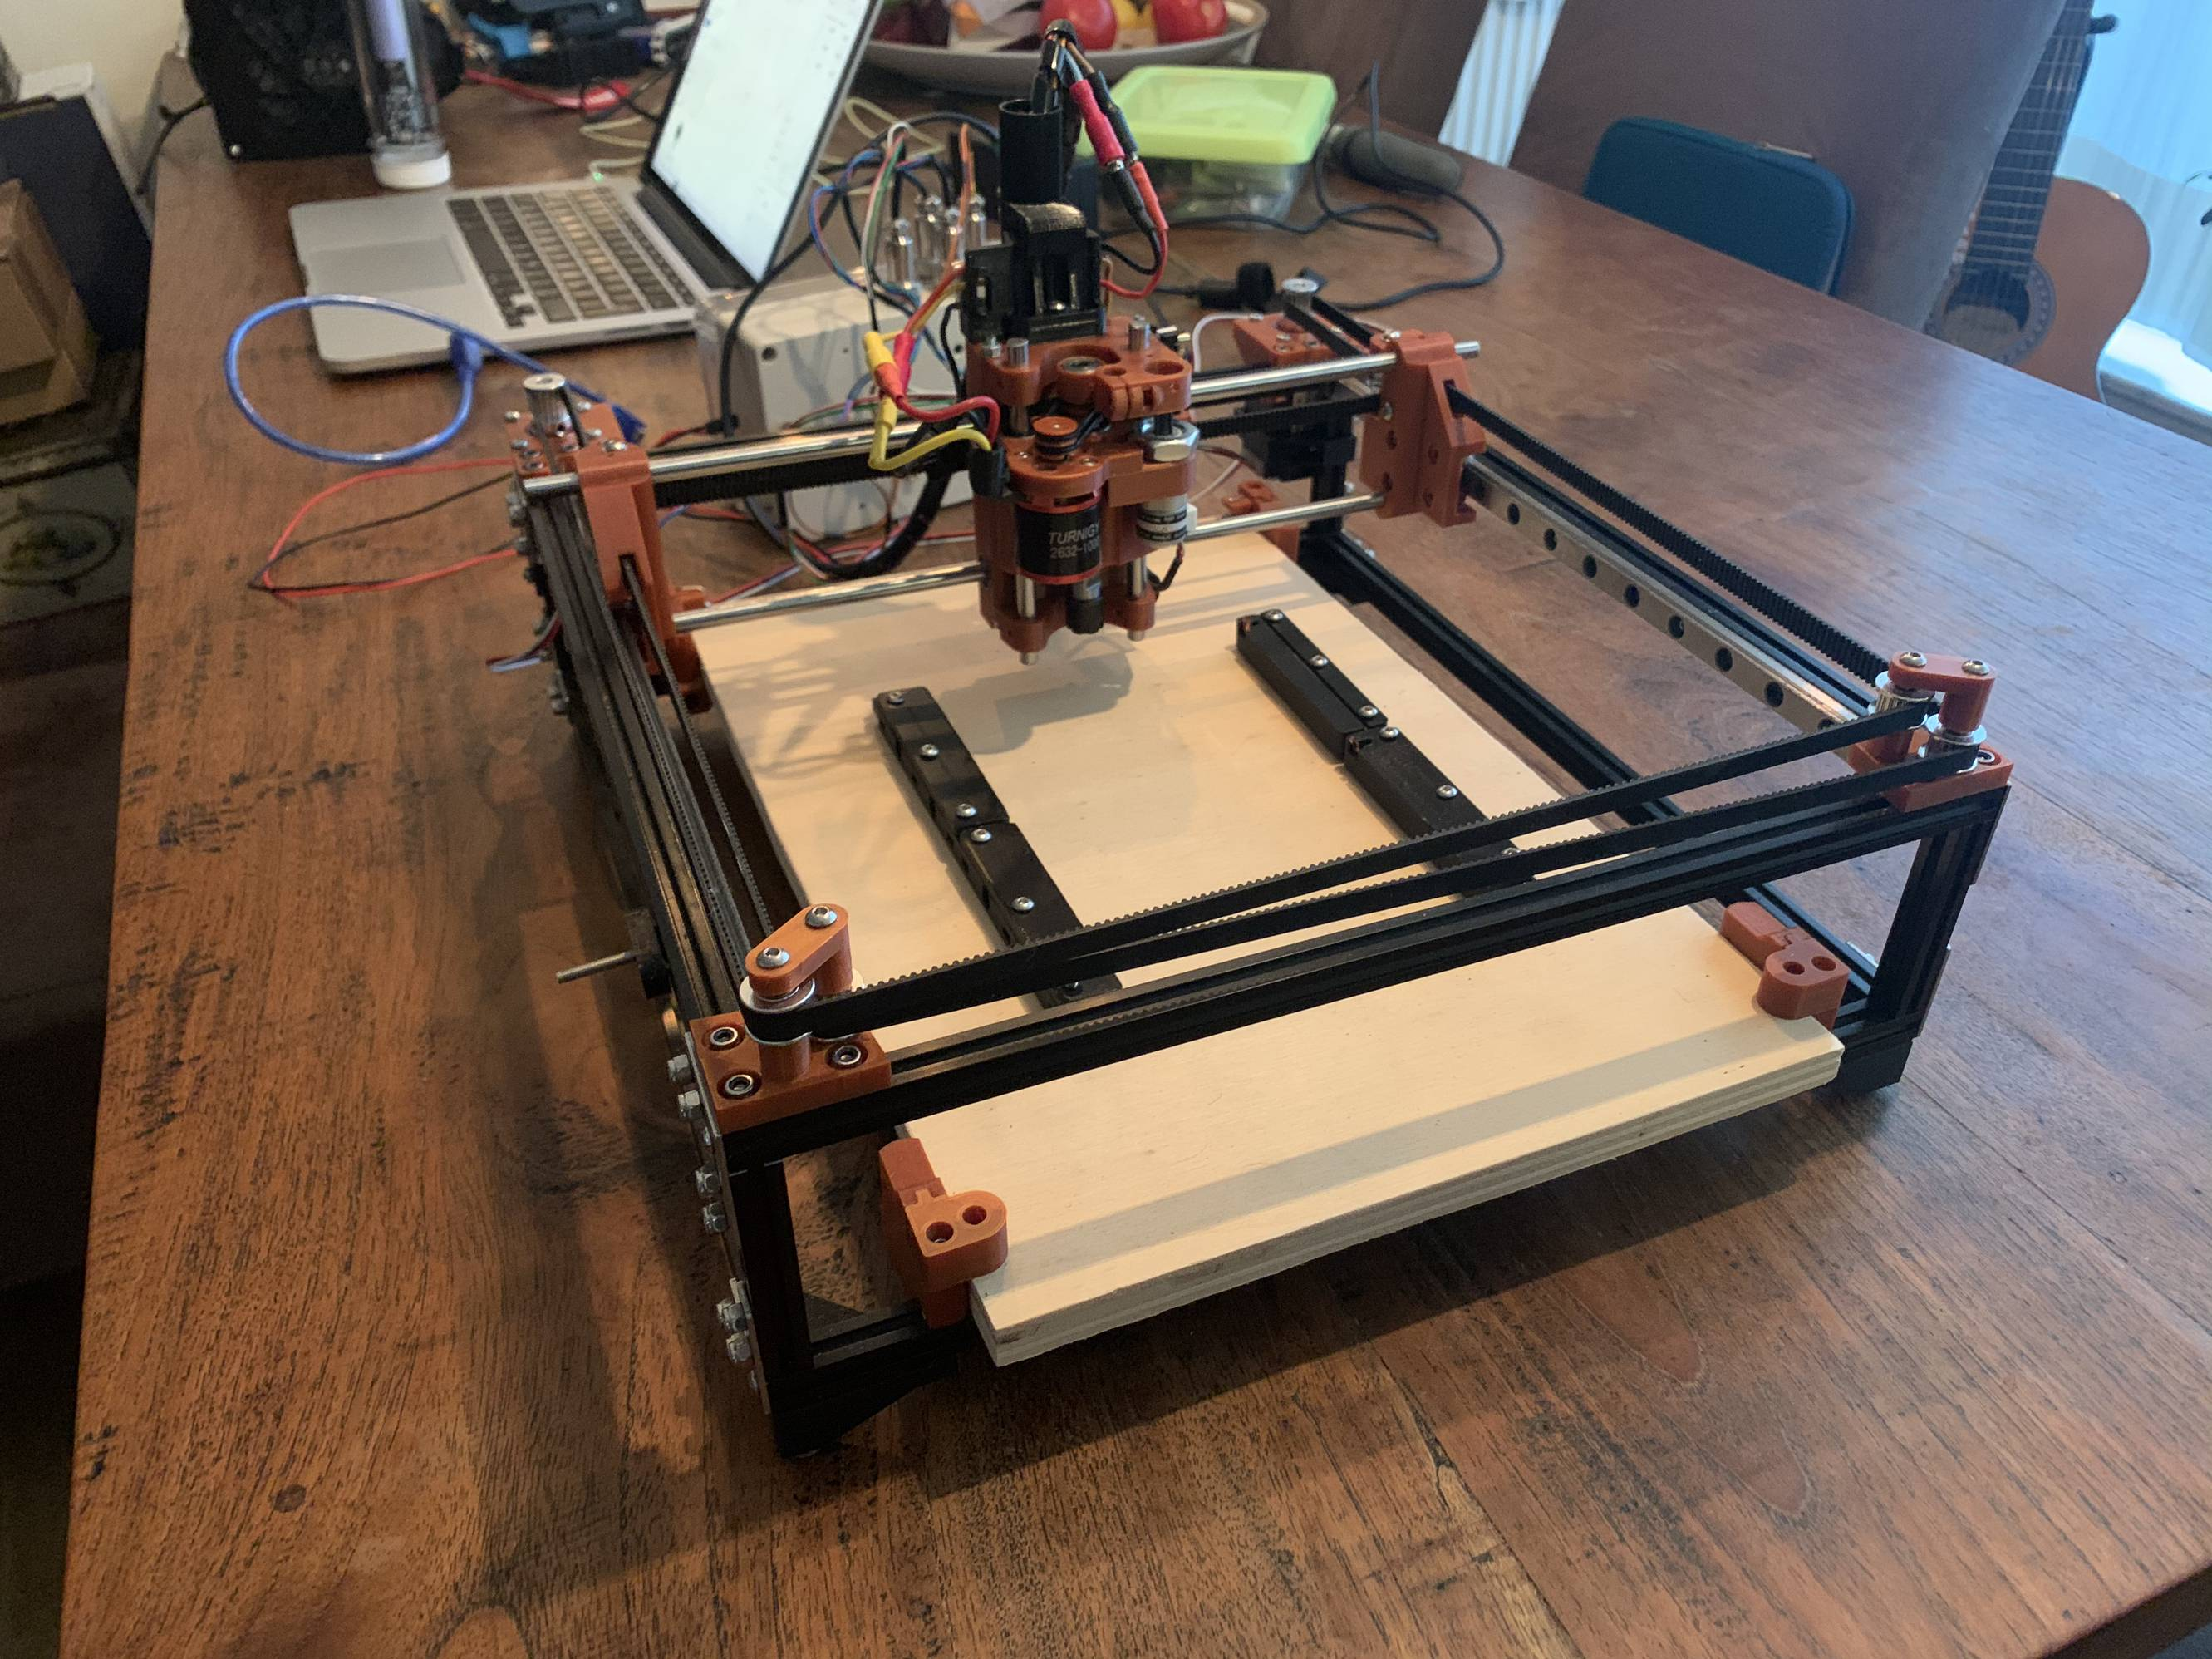 Work in progress of the Ant PCB Maker build